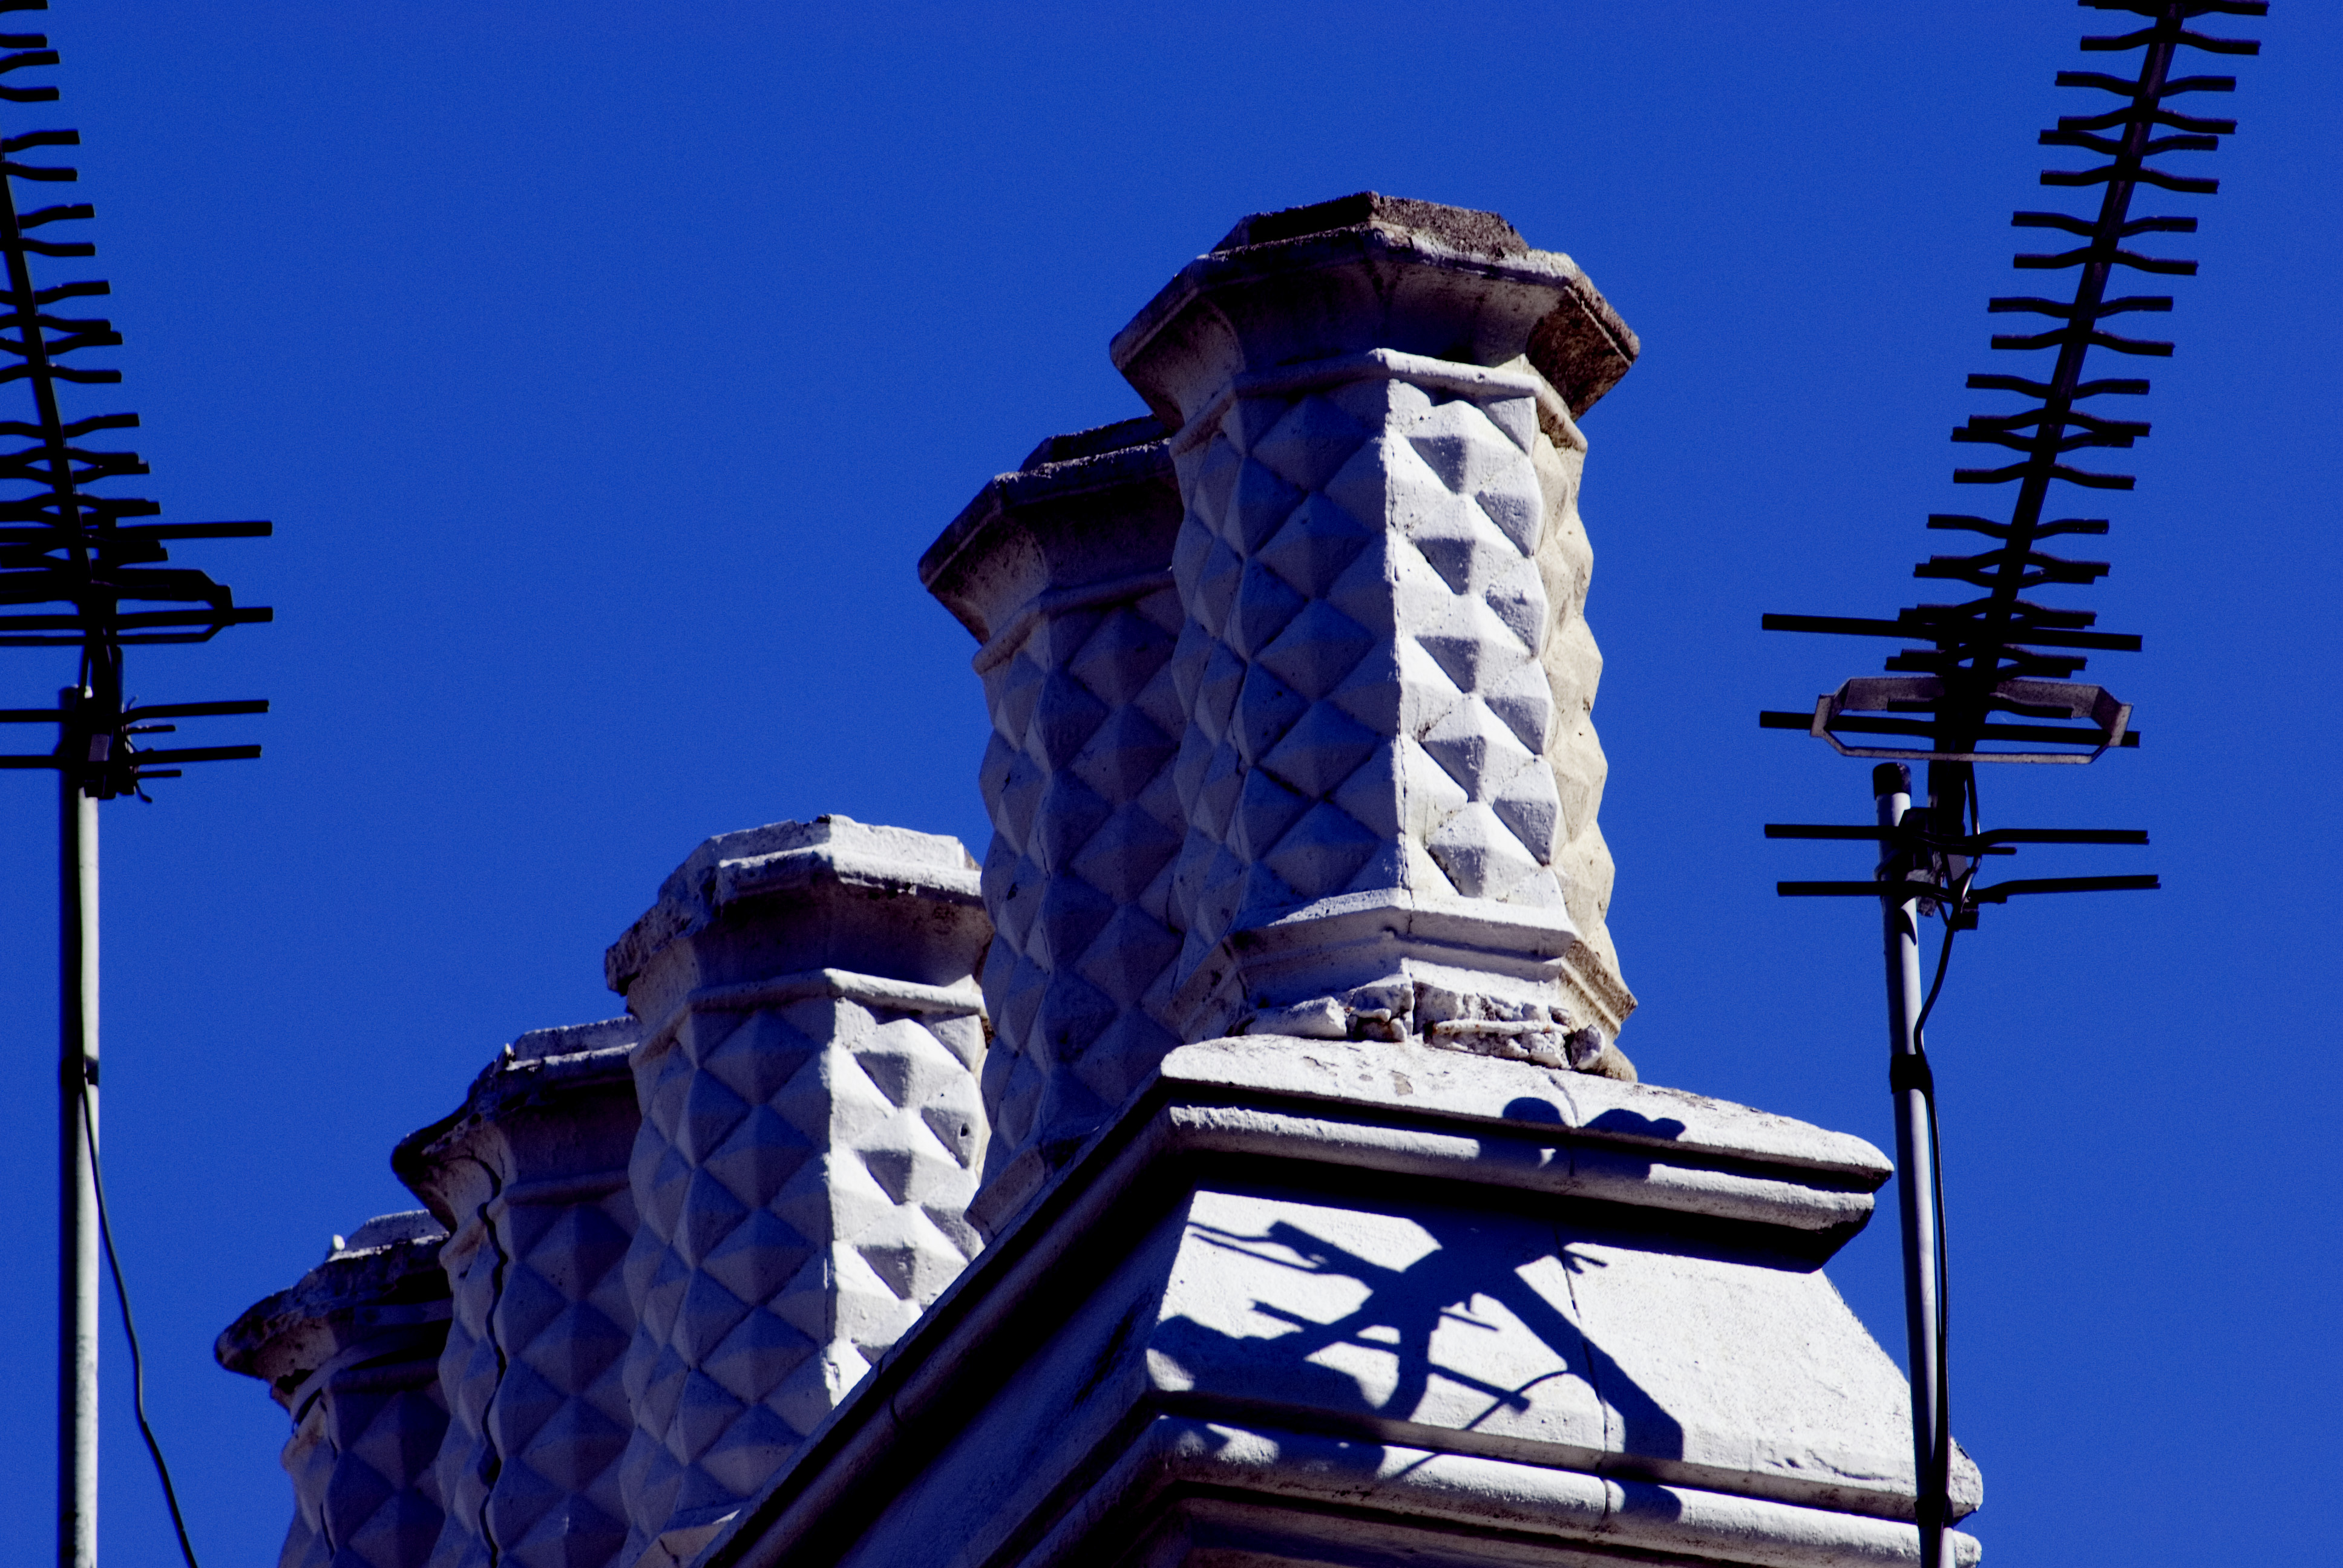 detail of a roof top against a vivid blue sky